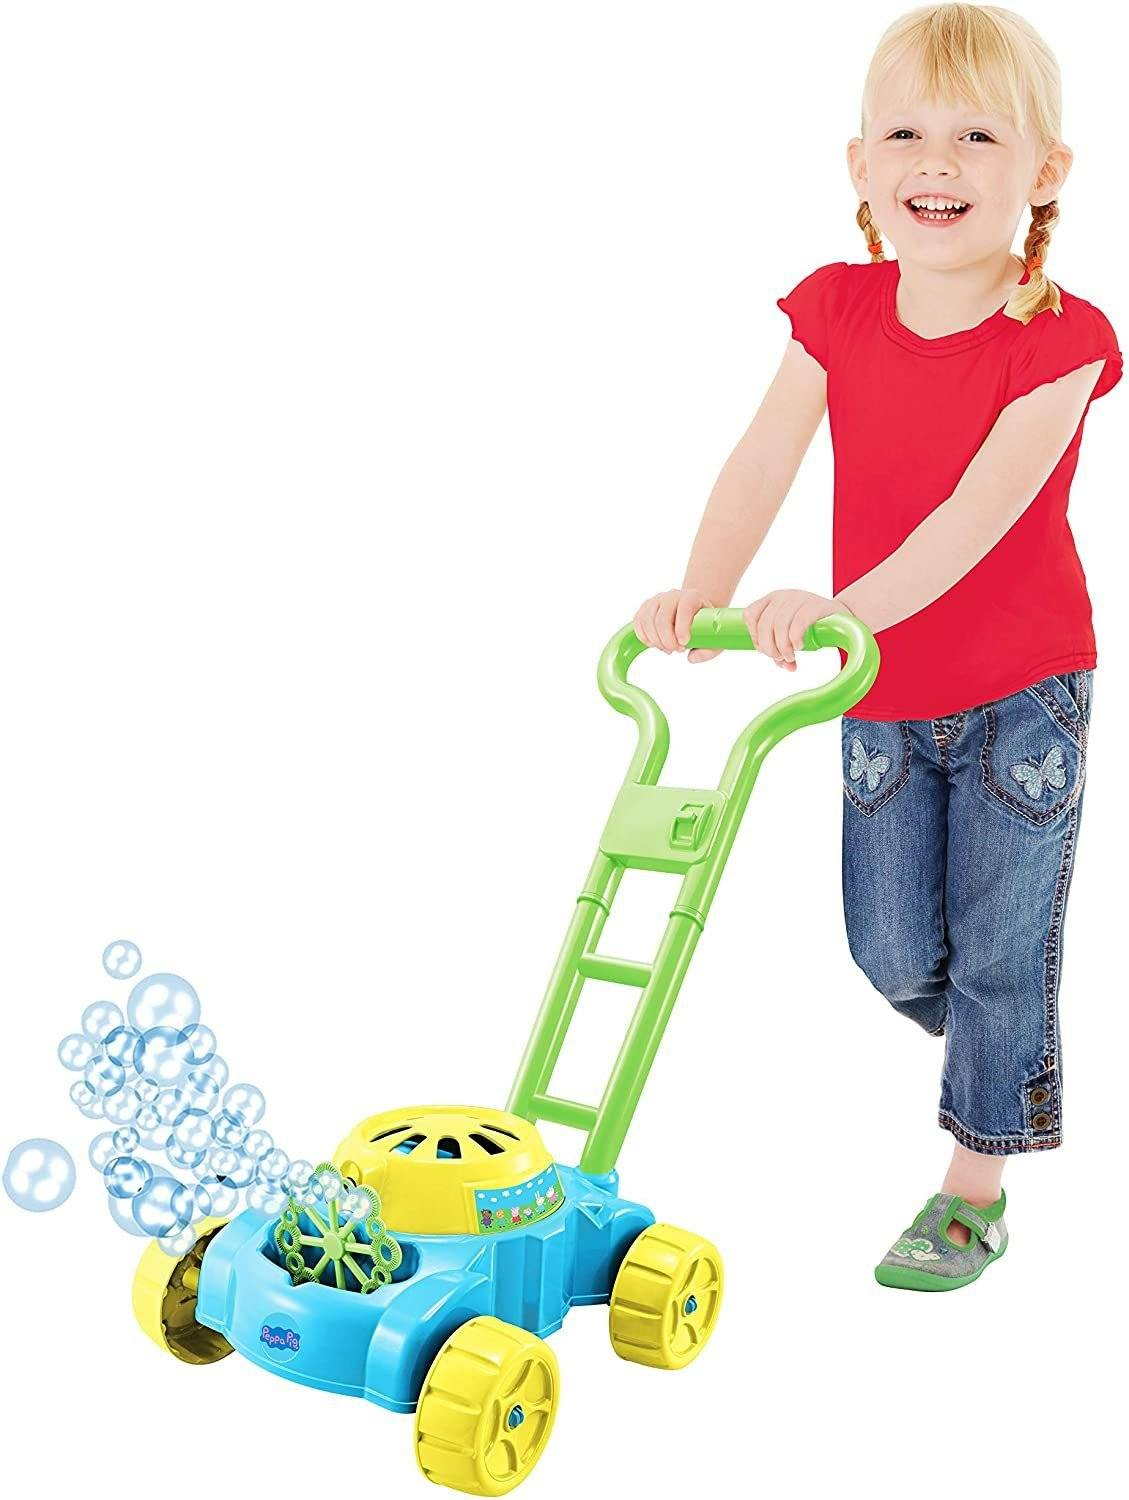 HTI Toys Peppa Pig Bubble Mower Playset - TOYBOX Cyprus